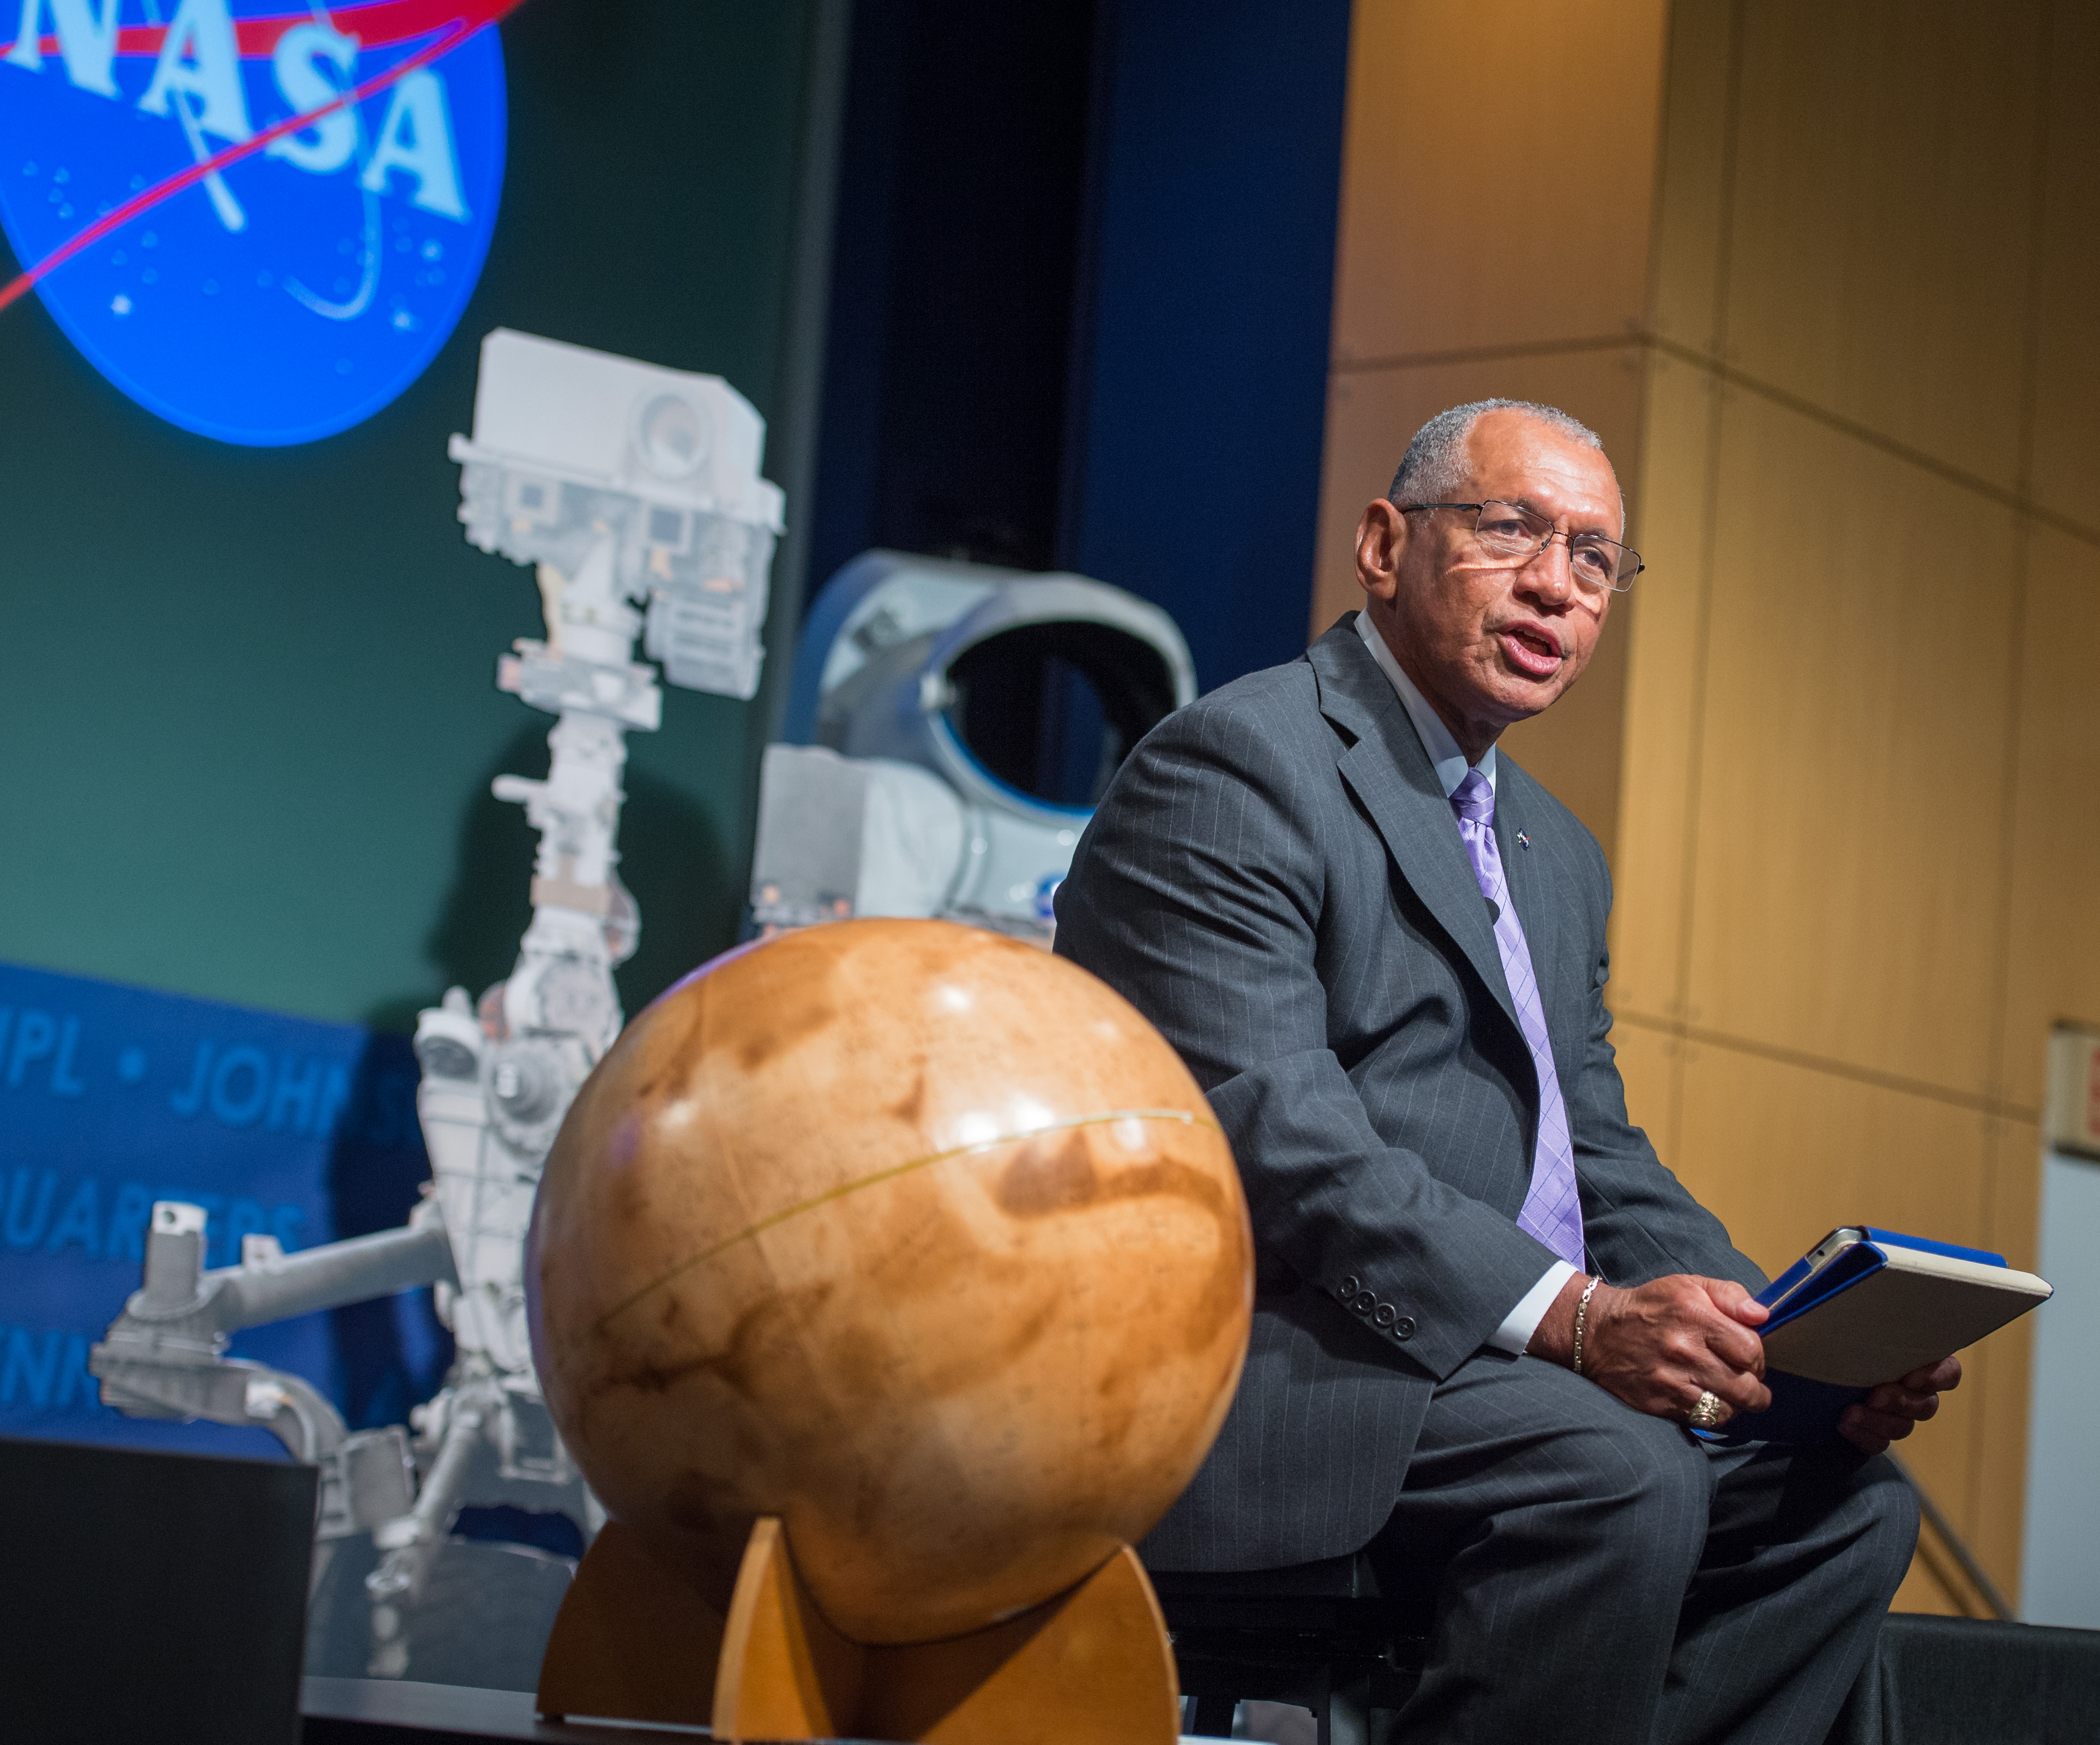 NASA Chief Charles Bolden's View on 2015 Budget Request